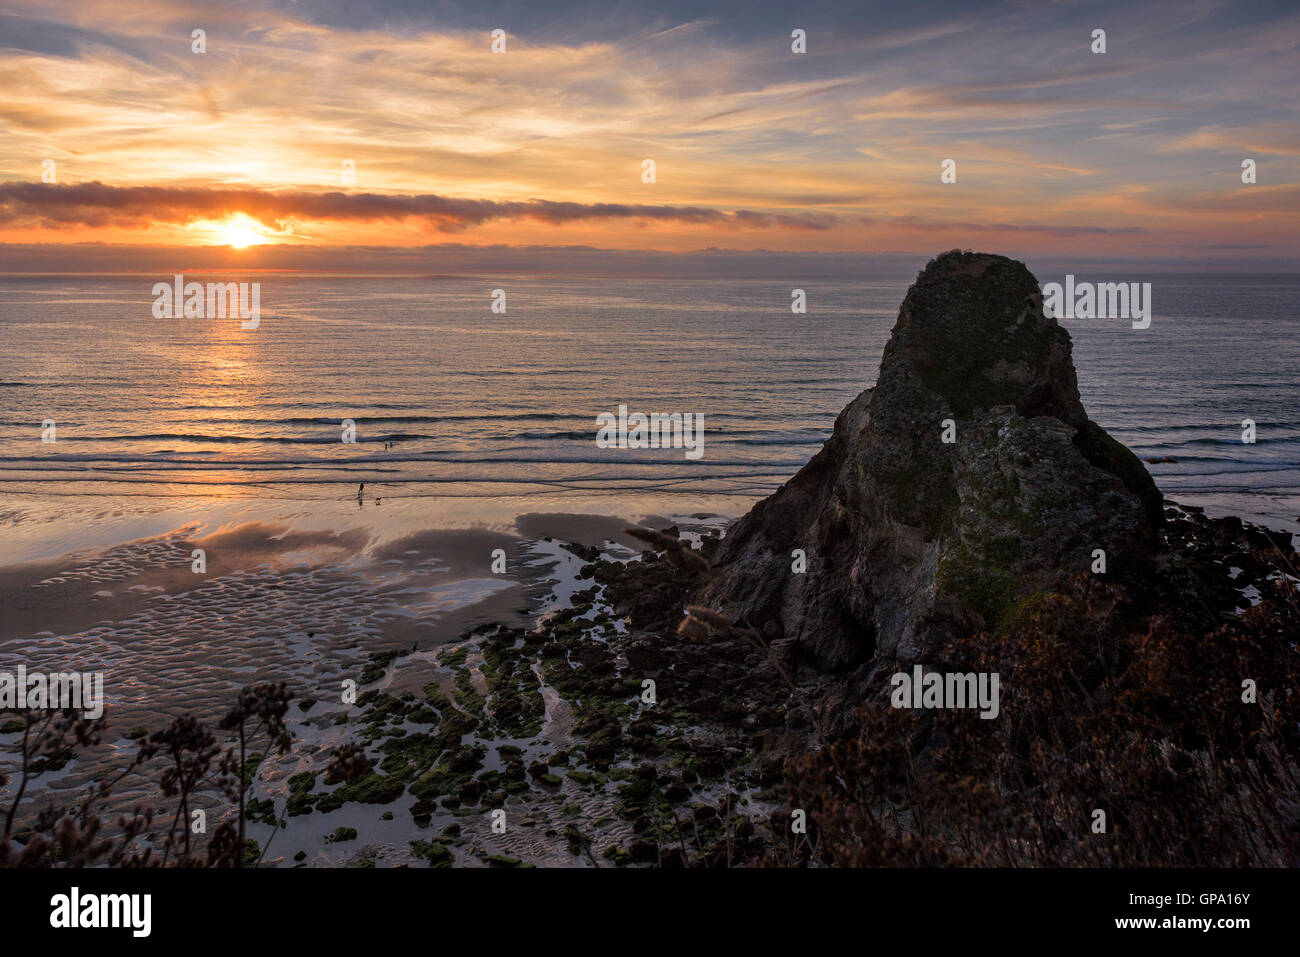 Spectacular sunset over Whipsiderry Beach in Newquay, Cornwall. - Stock Image